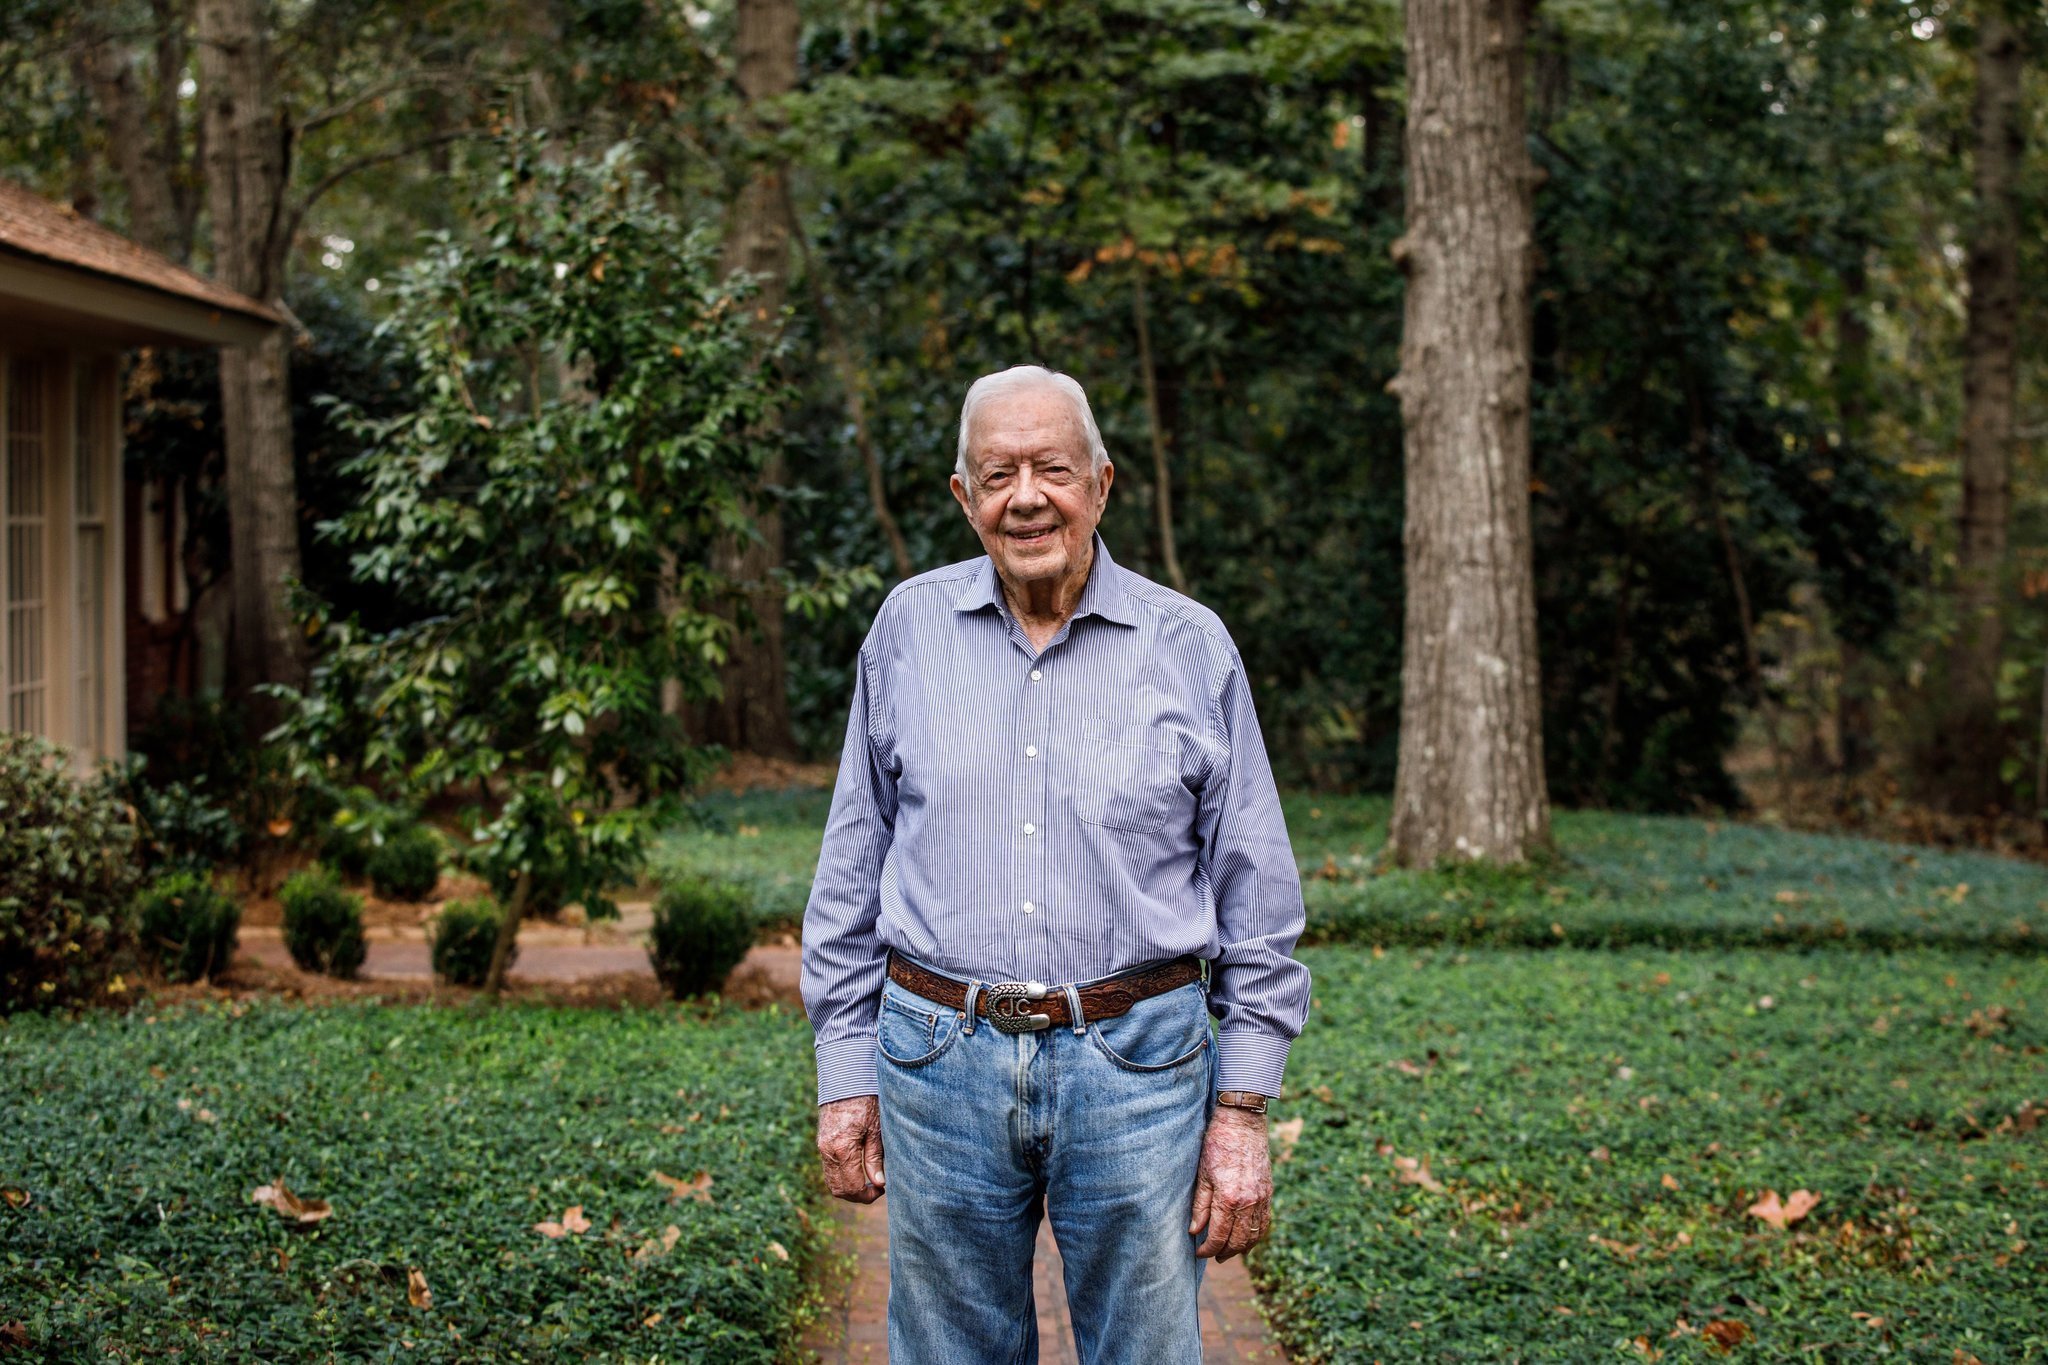 Jimmy Carter Is Now the Longest-Living U.S. President - The New York Times